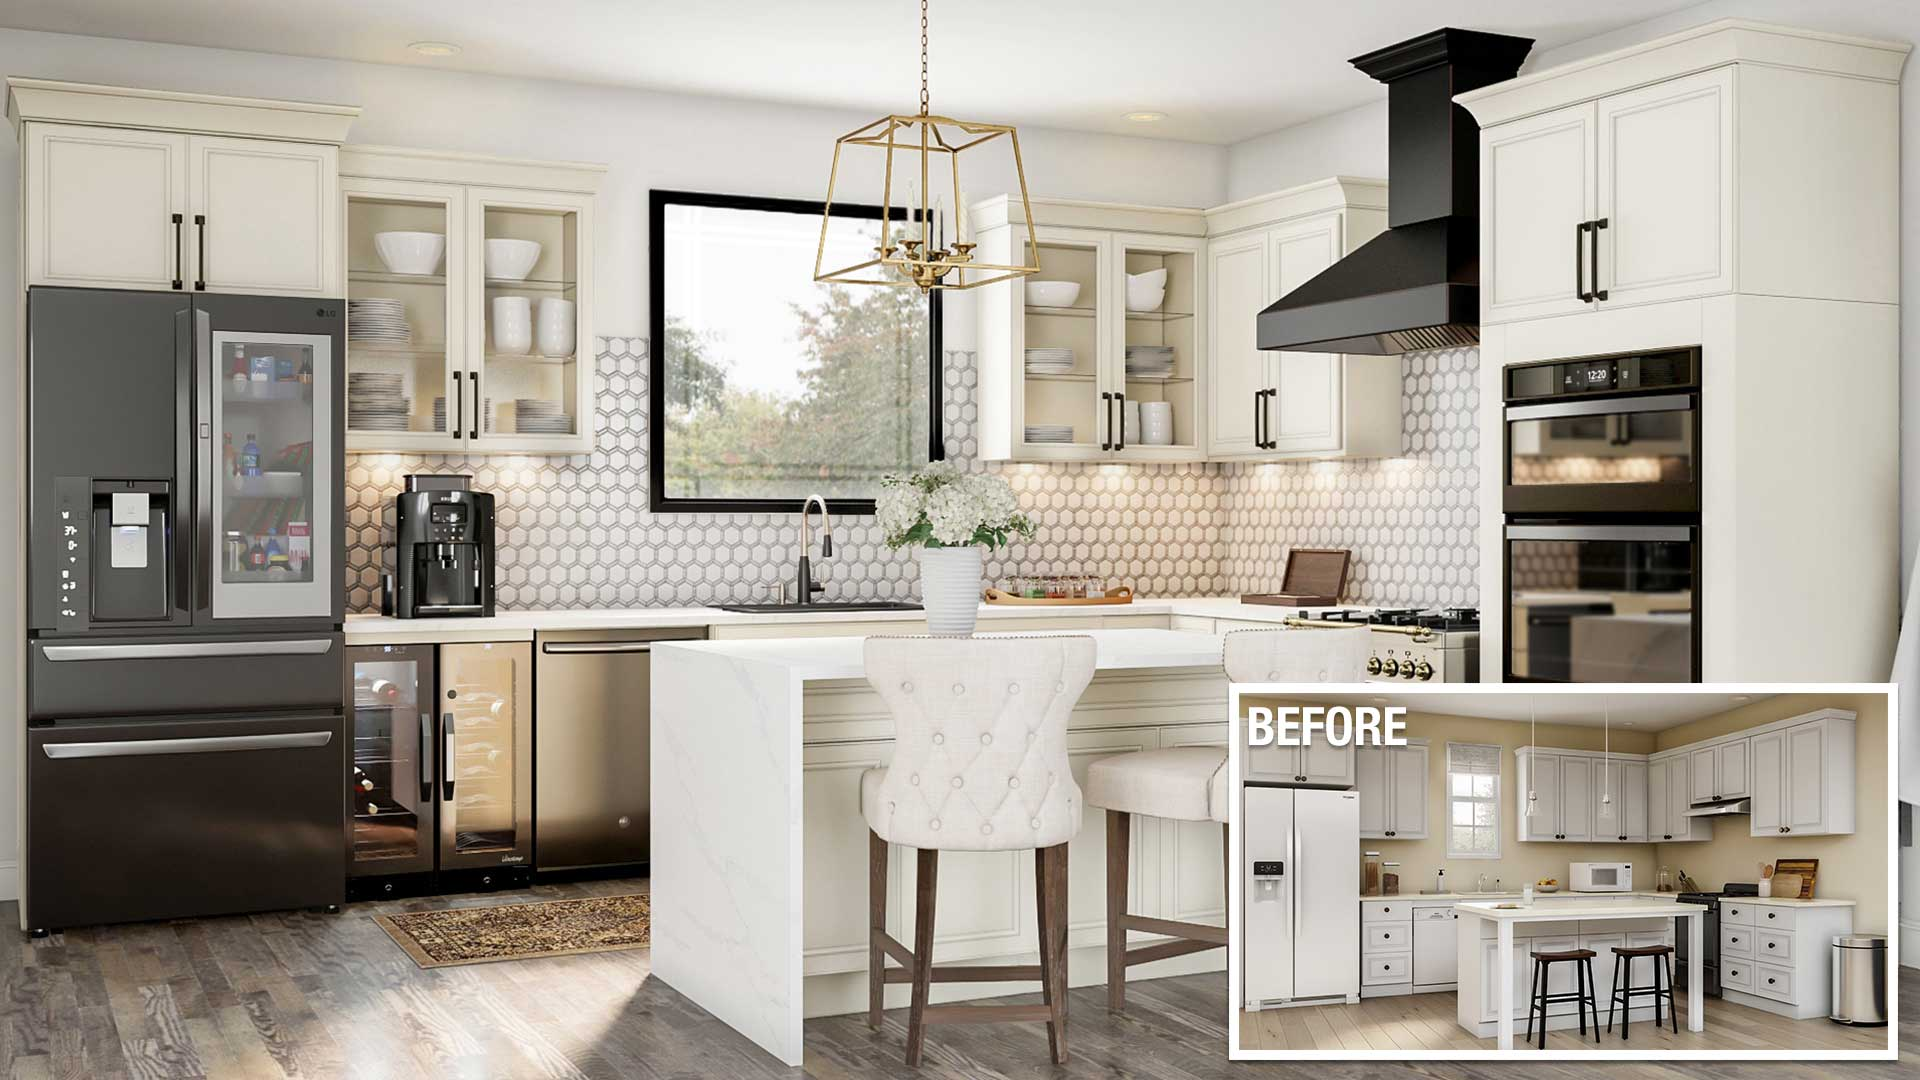 Cost to Remodel a Kitchen - The Home Depot